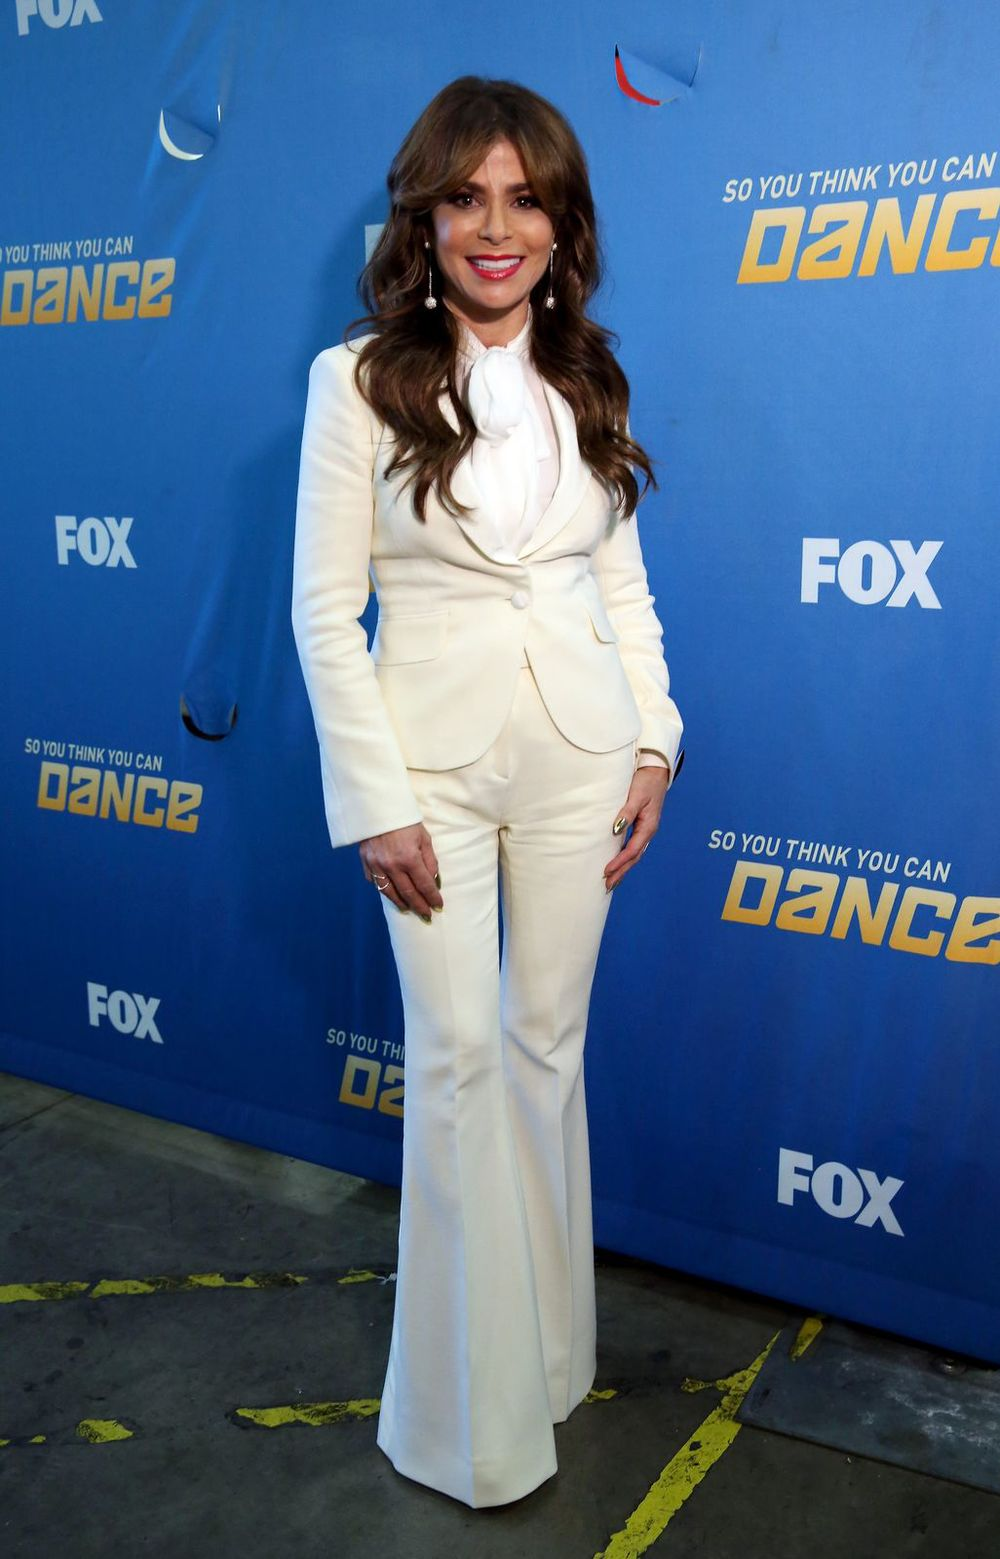 Paula Abdul     Suit: custom George Clinton Bespoke  Blouse: Barbara Bui  Shoes: Charlotte Olympia  Jewelry: XIV Karats  Nails: Kimmie Kyees